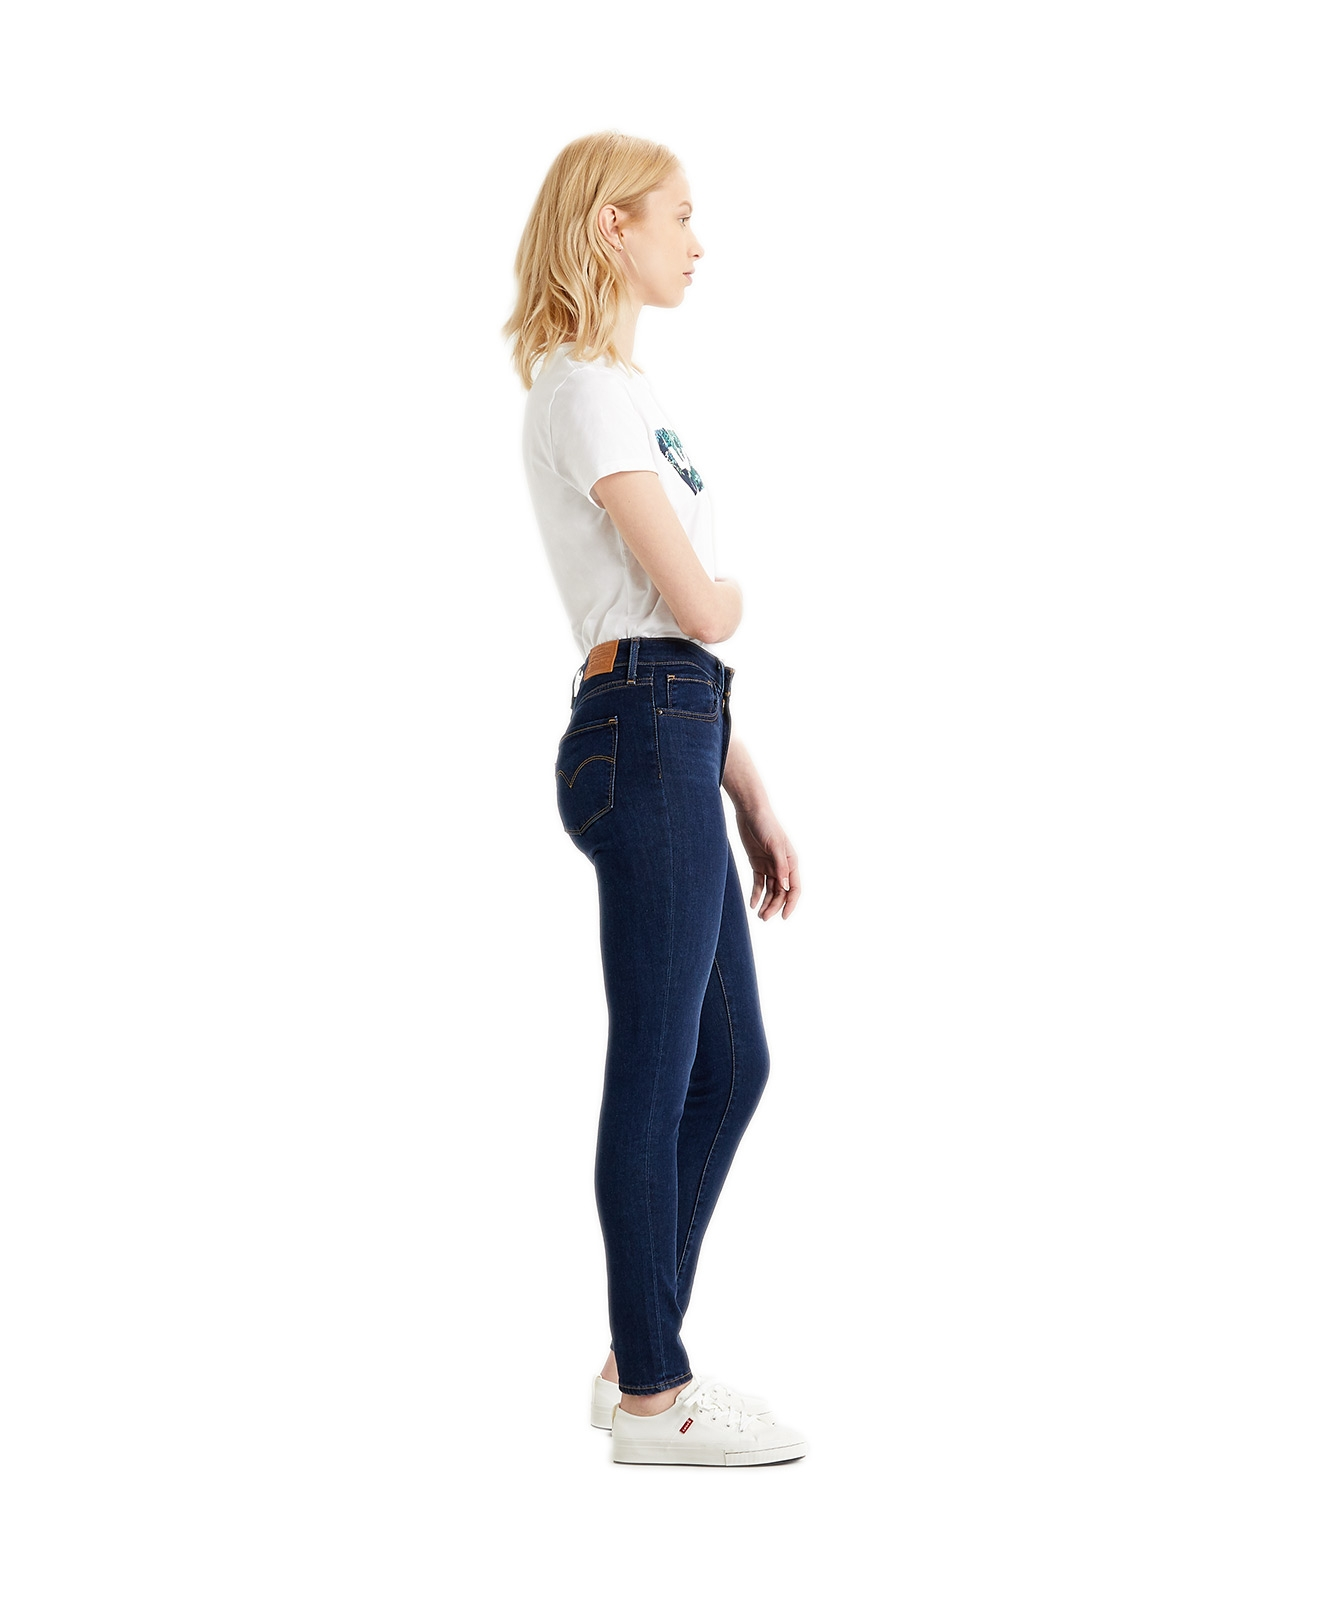 Hosen - Levis High Waisted Jeans 721 High Rise Skinny in Bogota Feels  - Onlineshop Jeans Meile